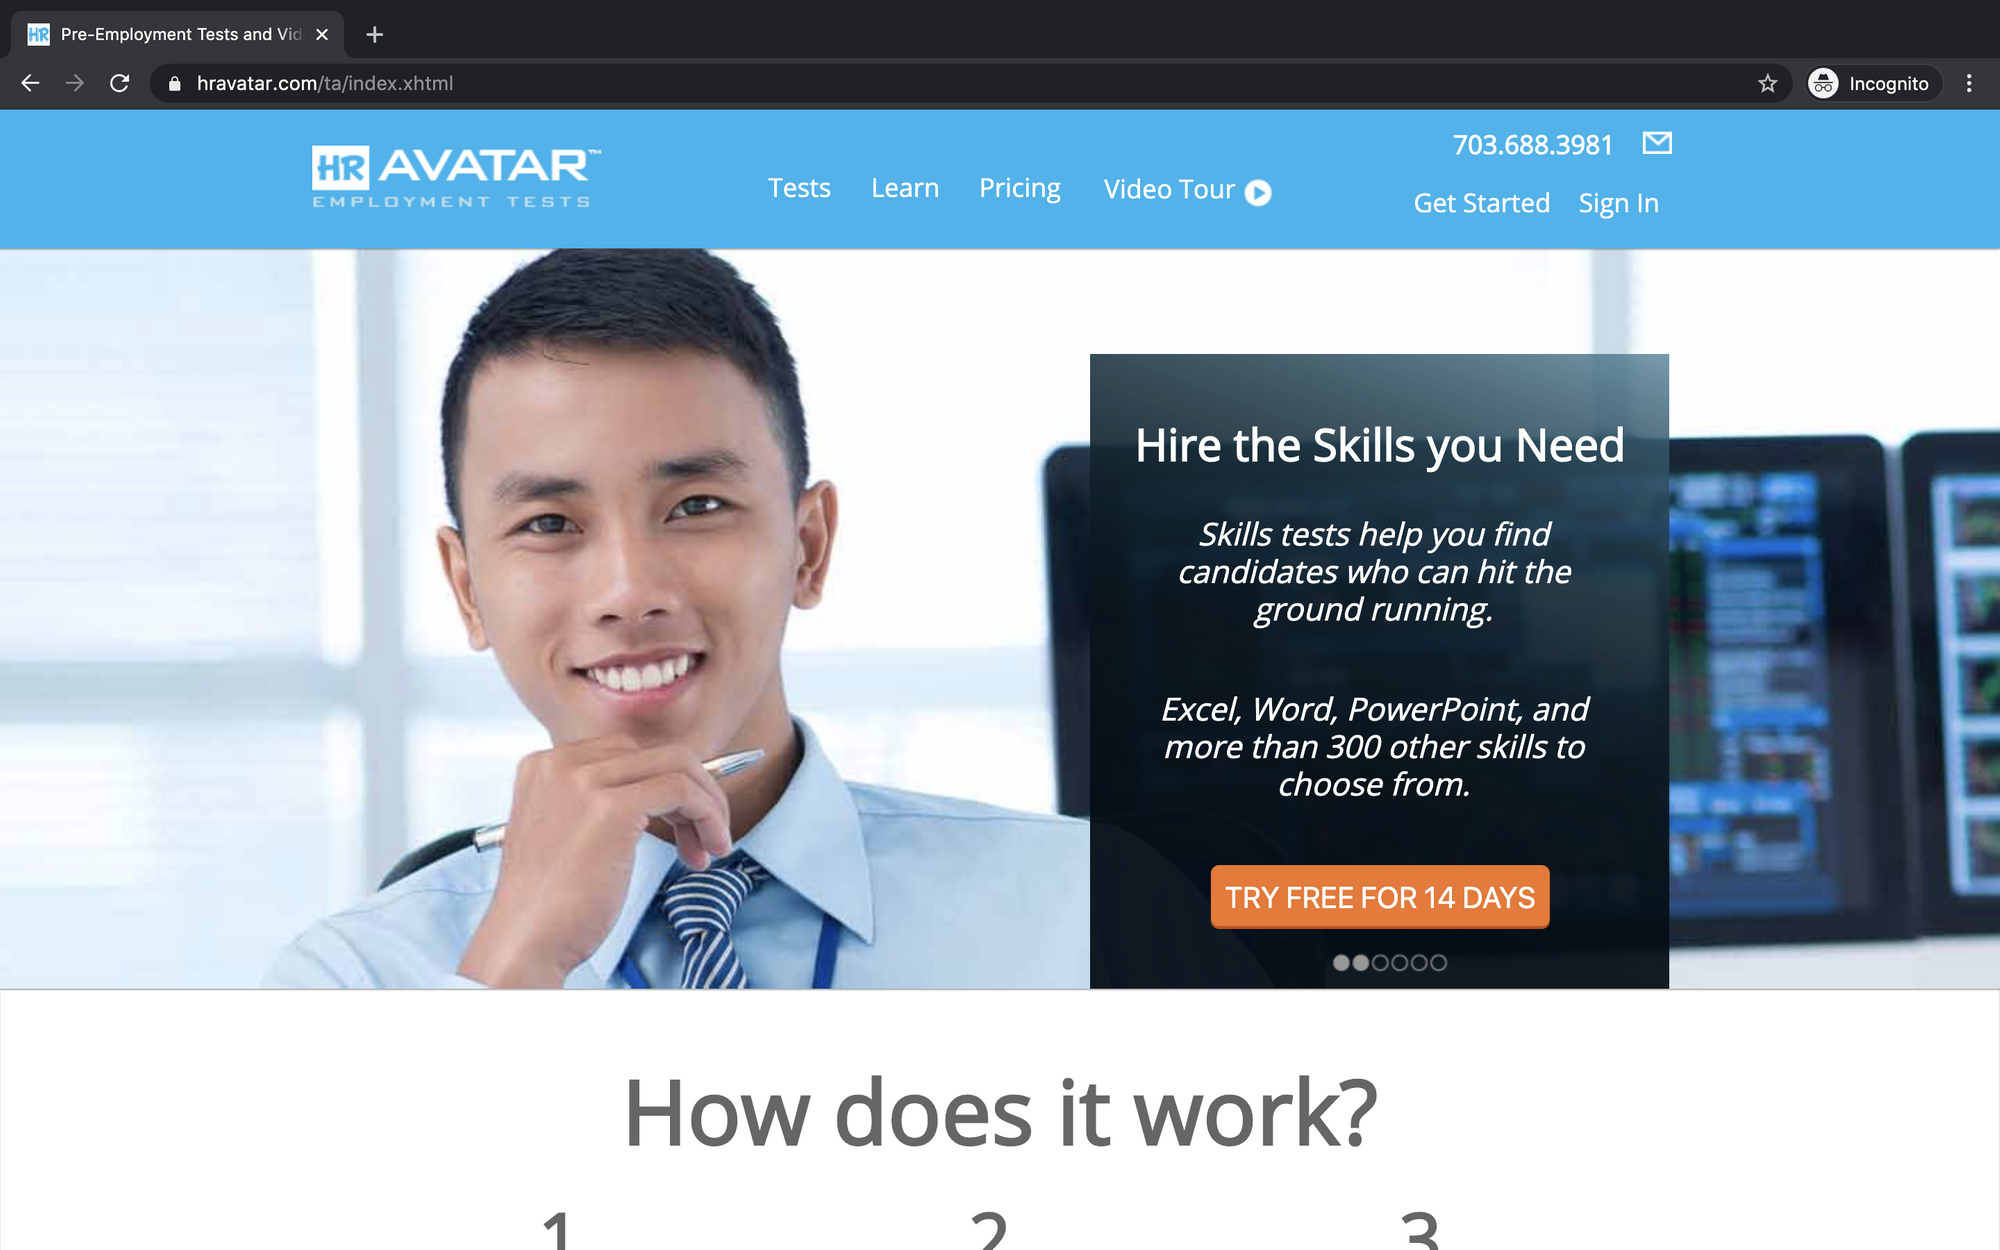 Compare HR Avatar Vs Adaface